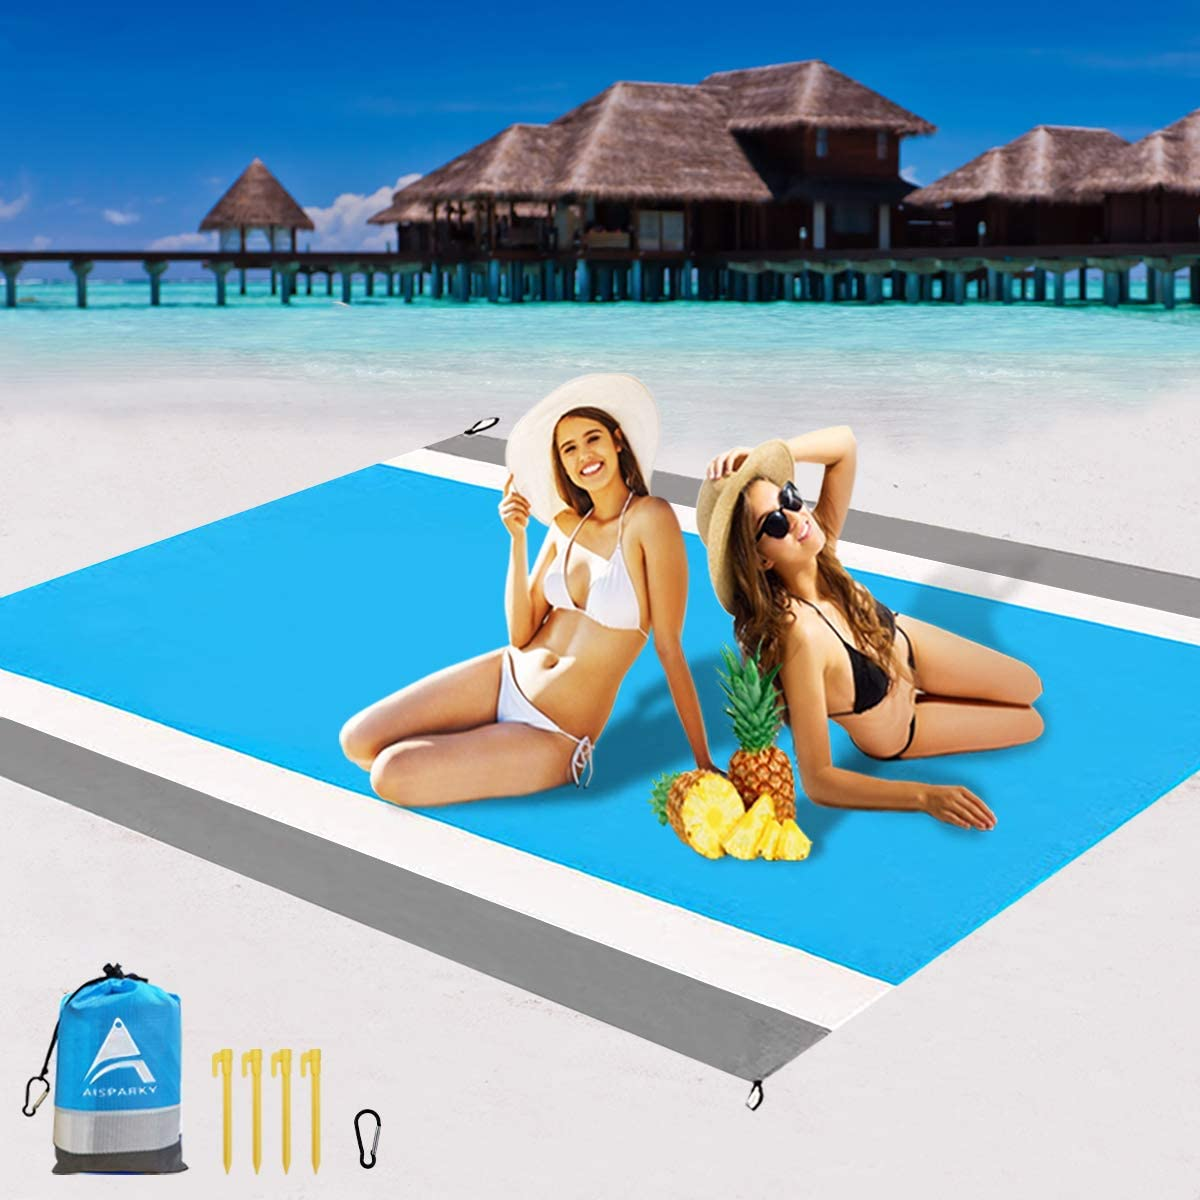 Beach Mat Outdoor Picnic Blanket Large Sand Free Compact for 4-7 Persons Water Proof and Drying Mats Nylon Pocket Picnic for Outdoor Travel AISPARKY Beach Blanket 78 X 81